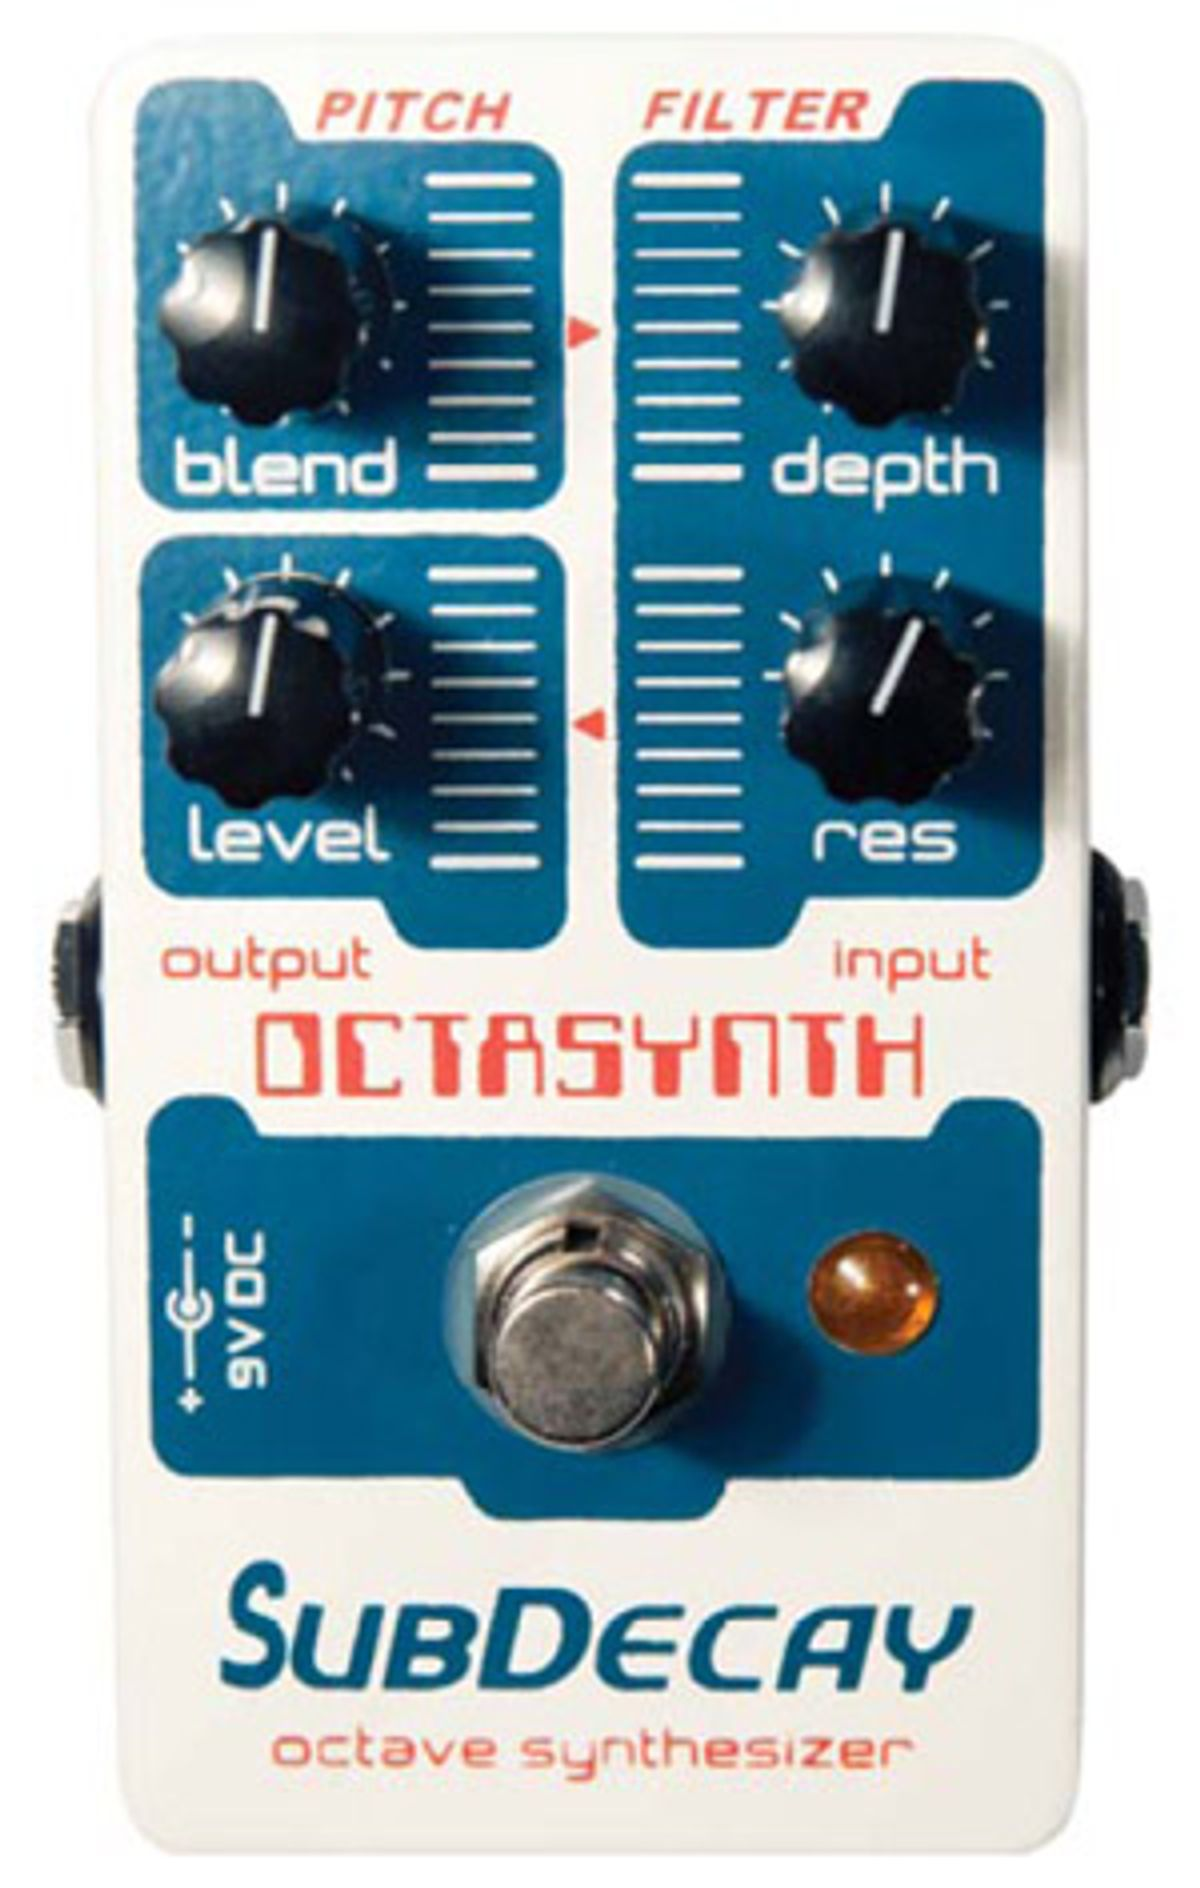 Subdecay Octasynth Pedal Review